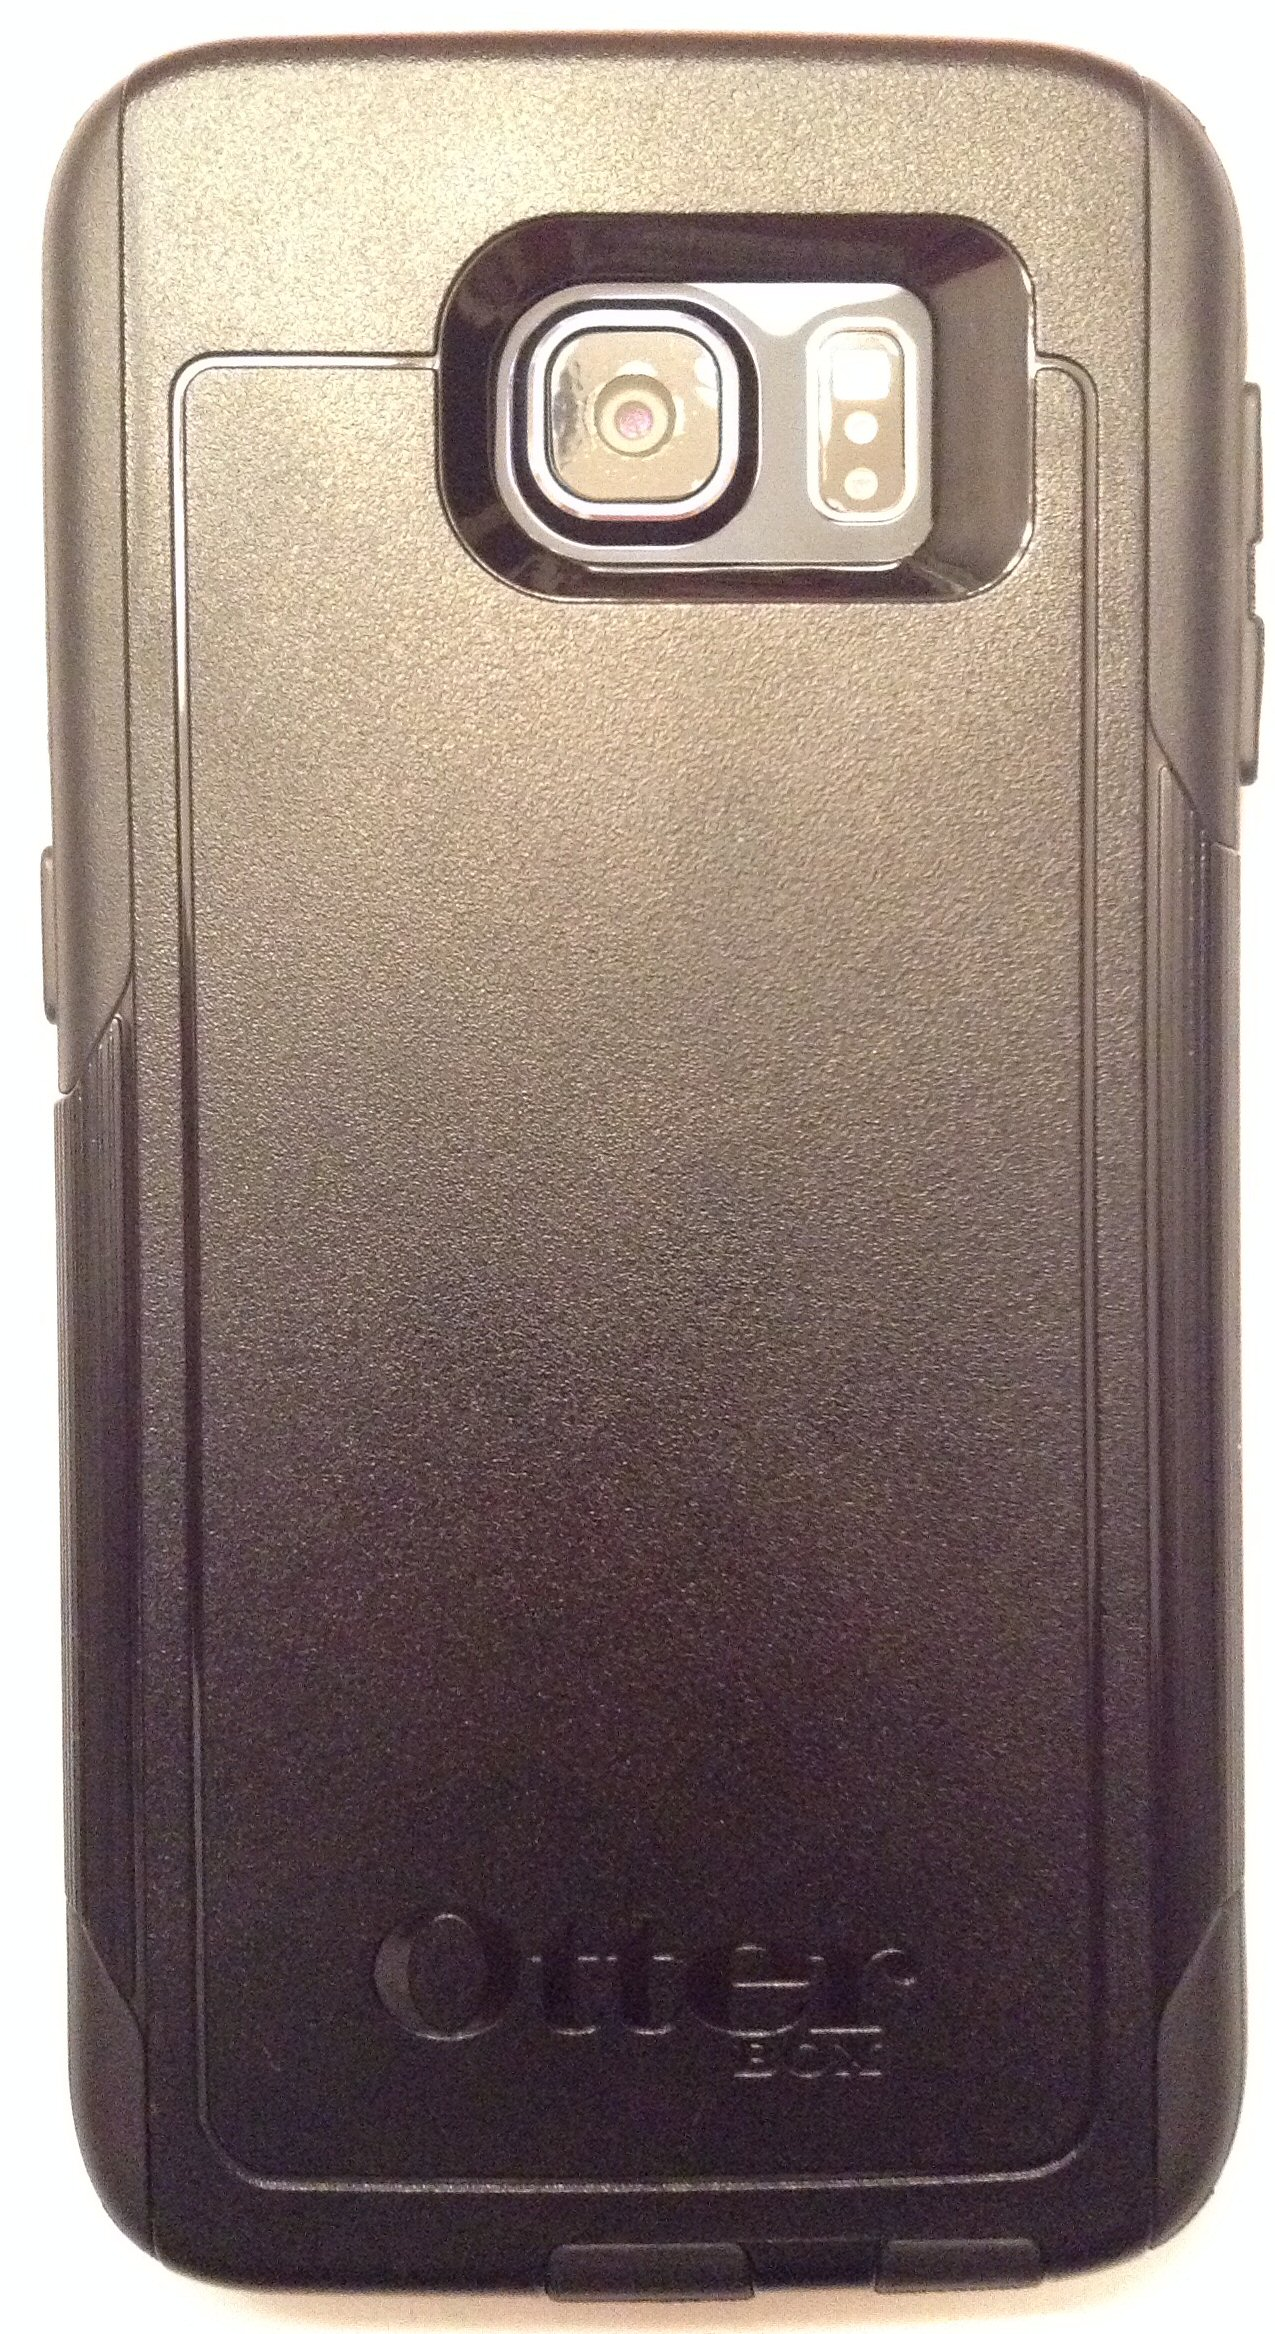 The Otterbox Defender Case